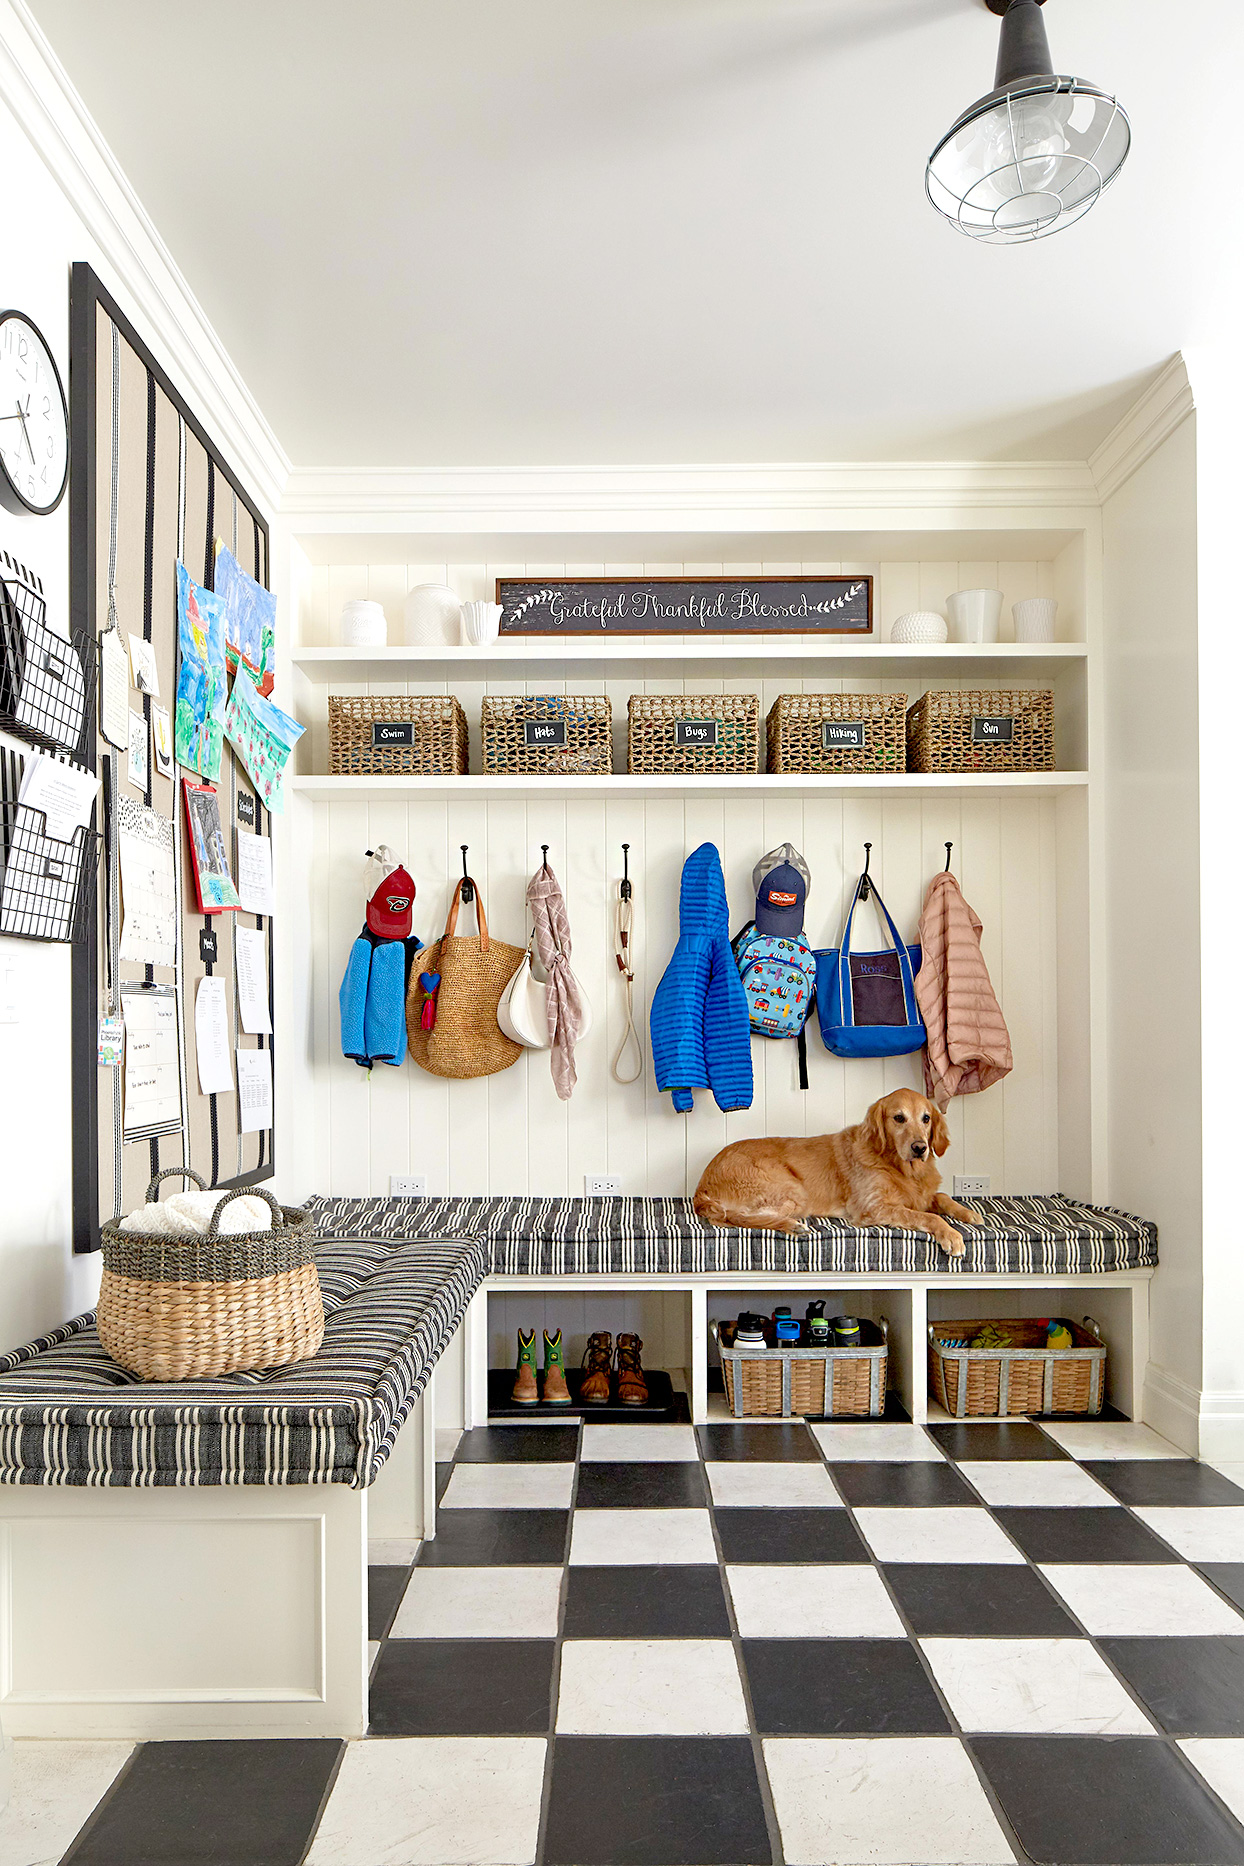 Entryway with hangers and baskets